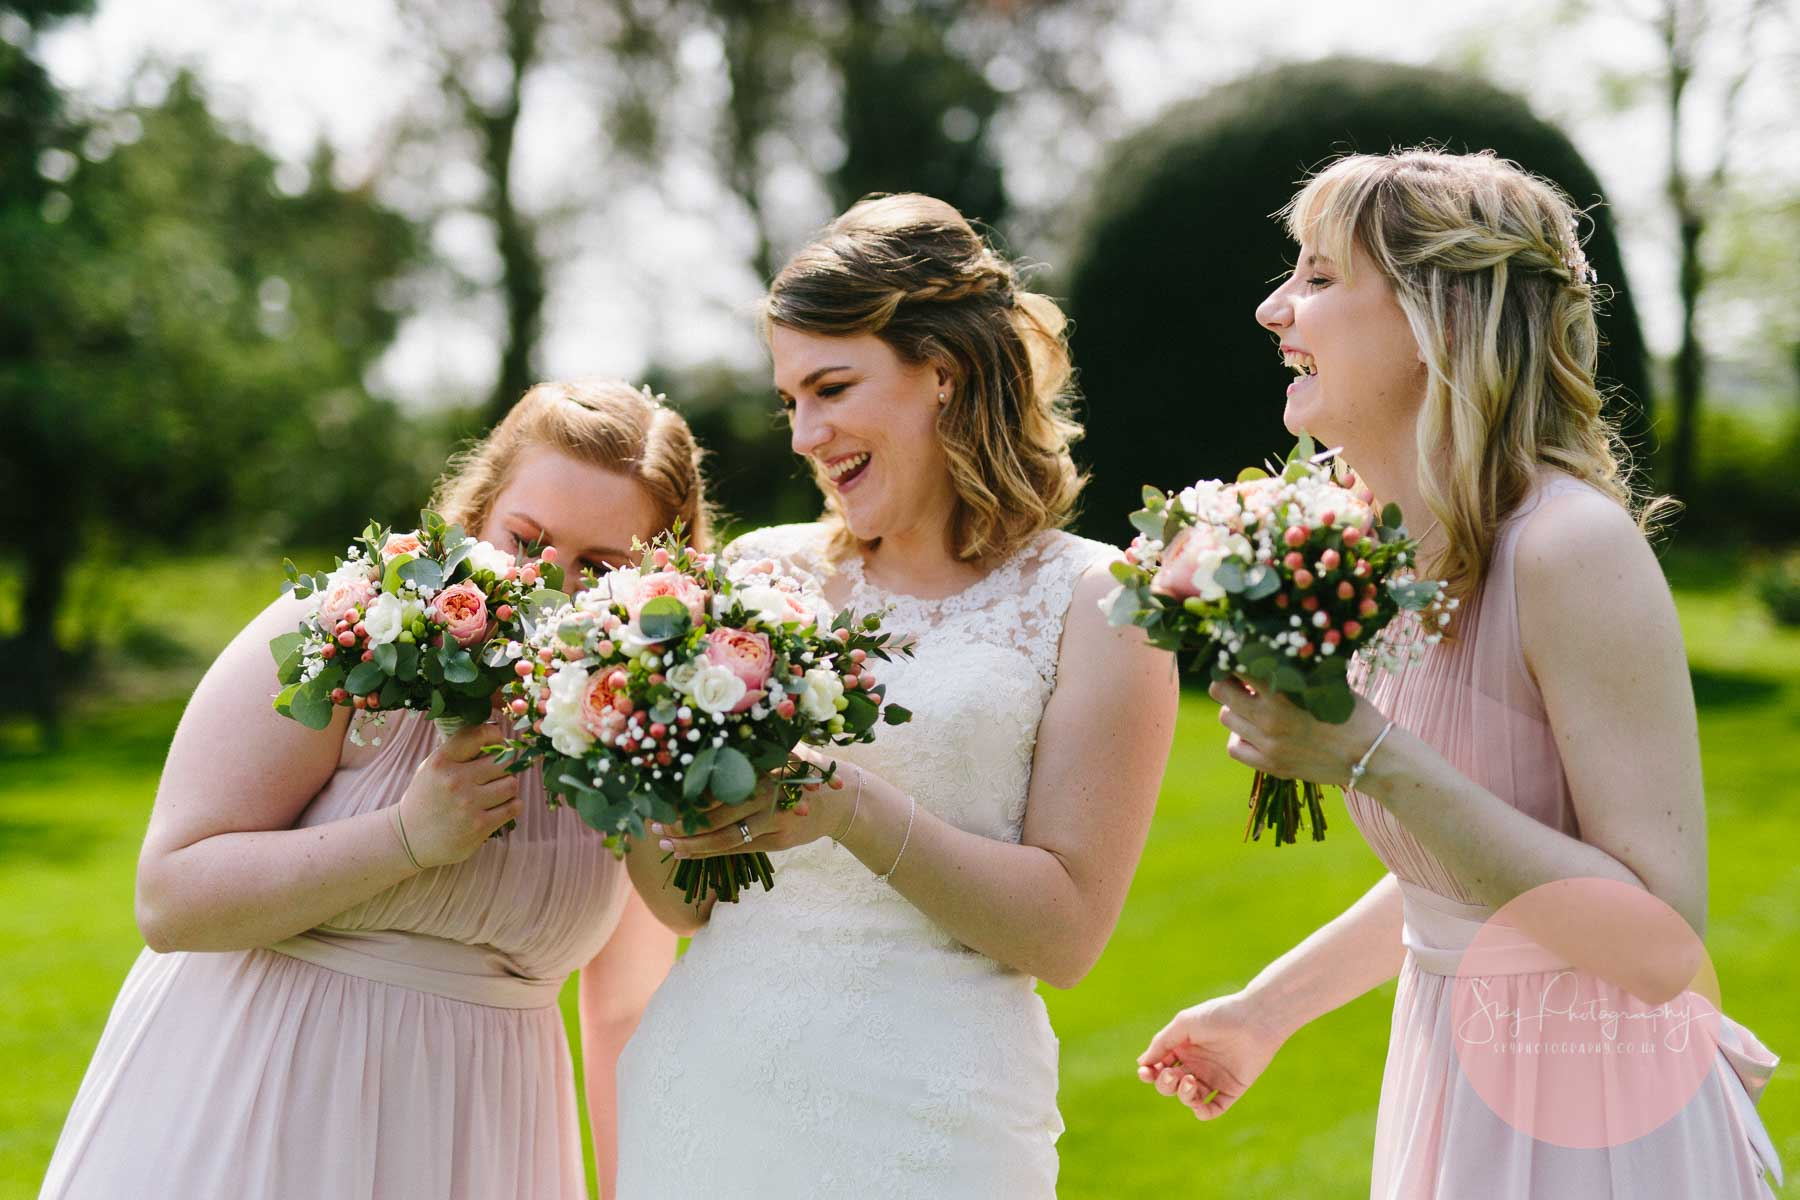 Bridesmaids laughing with flowers